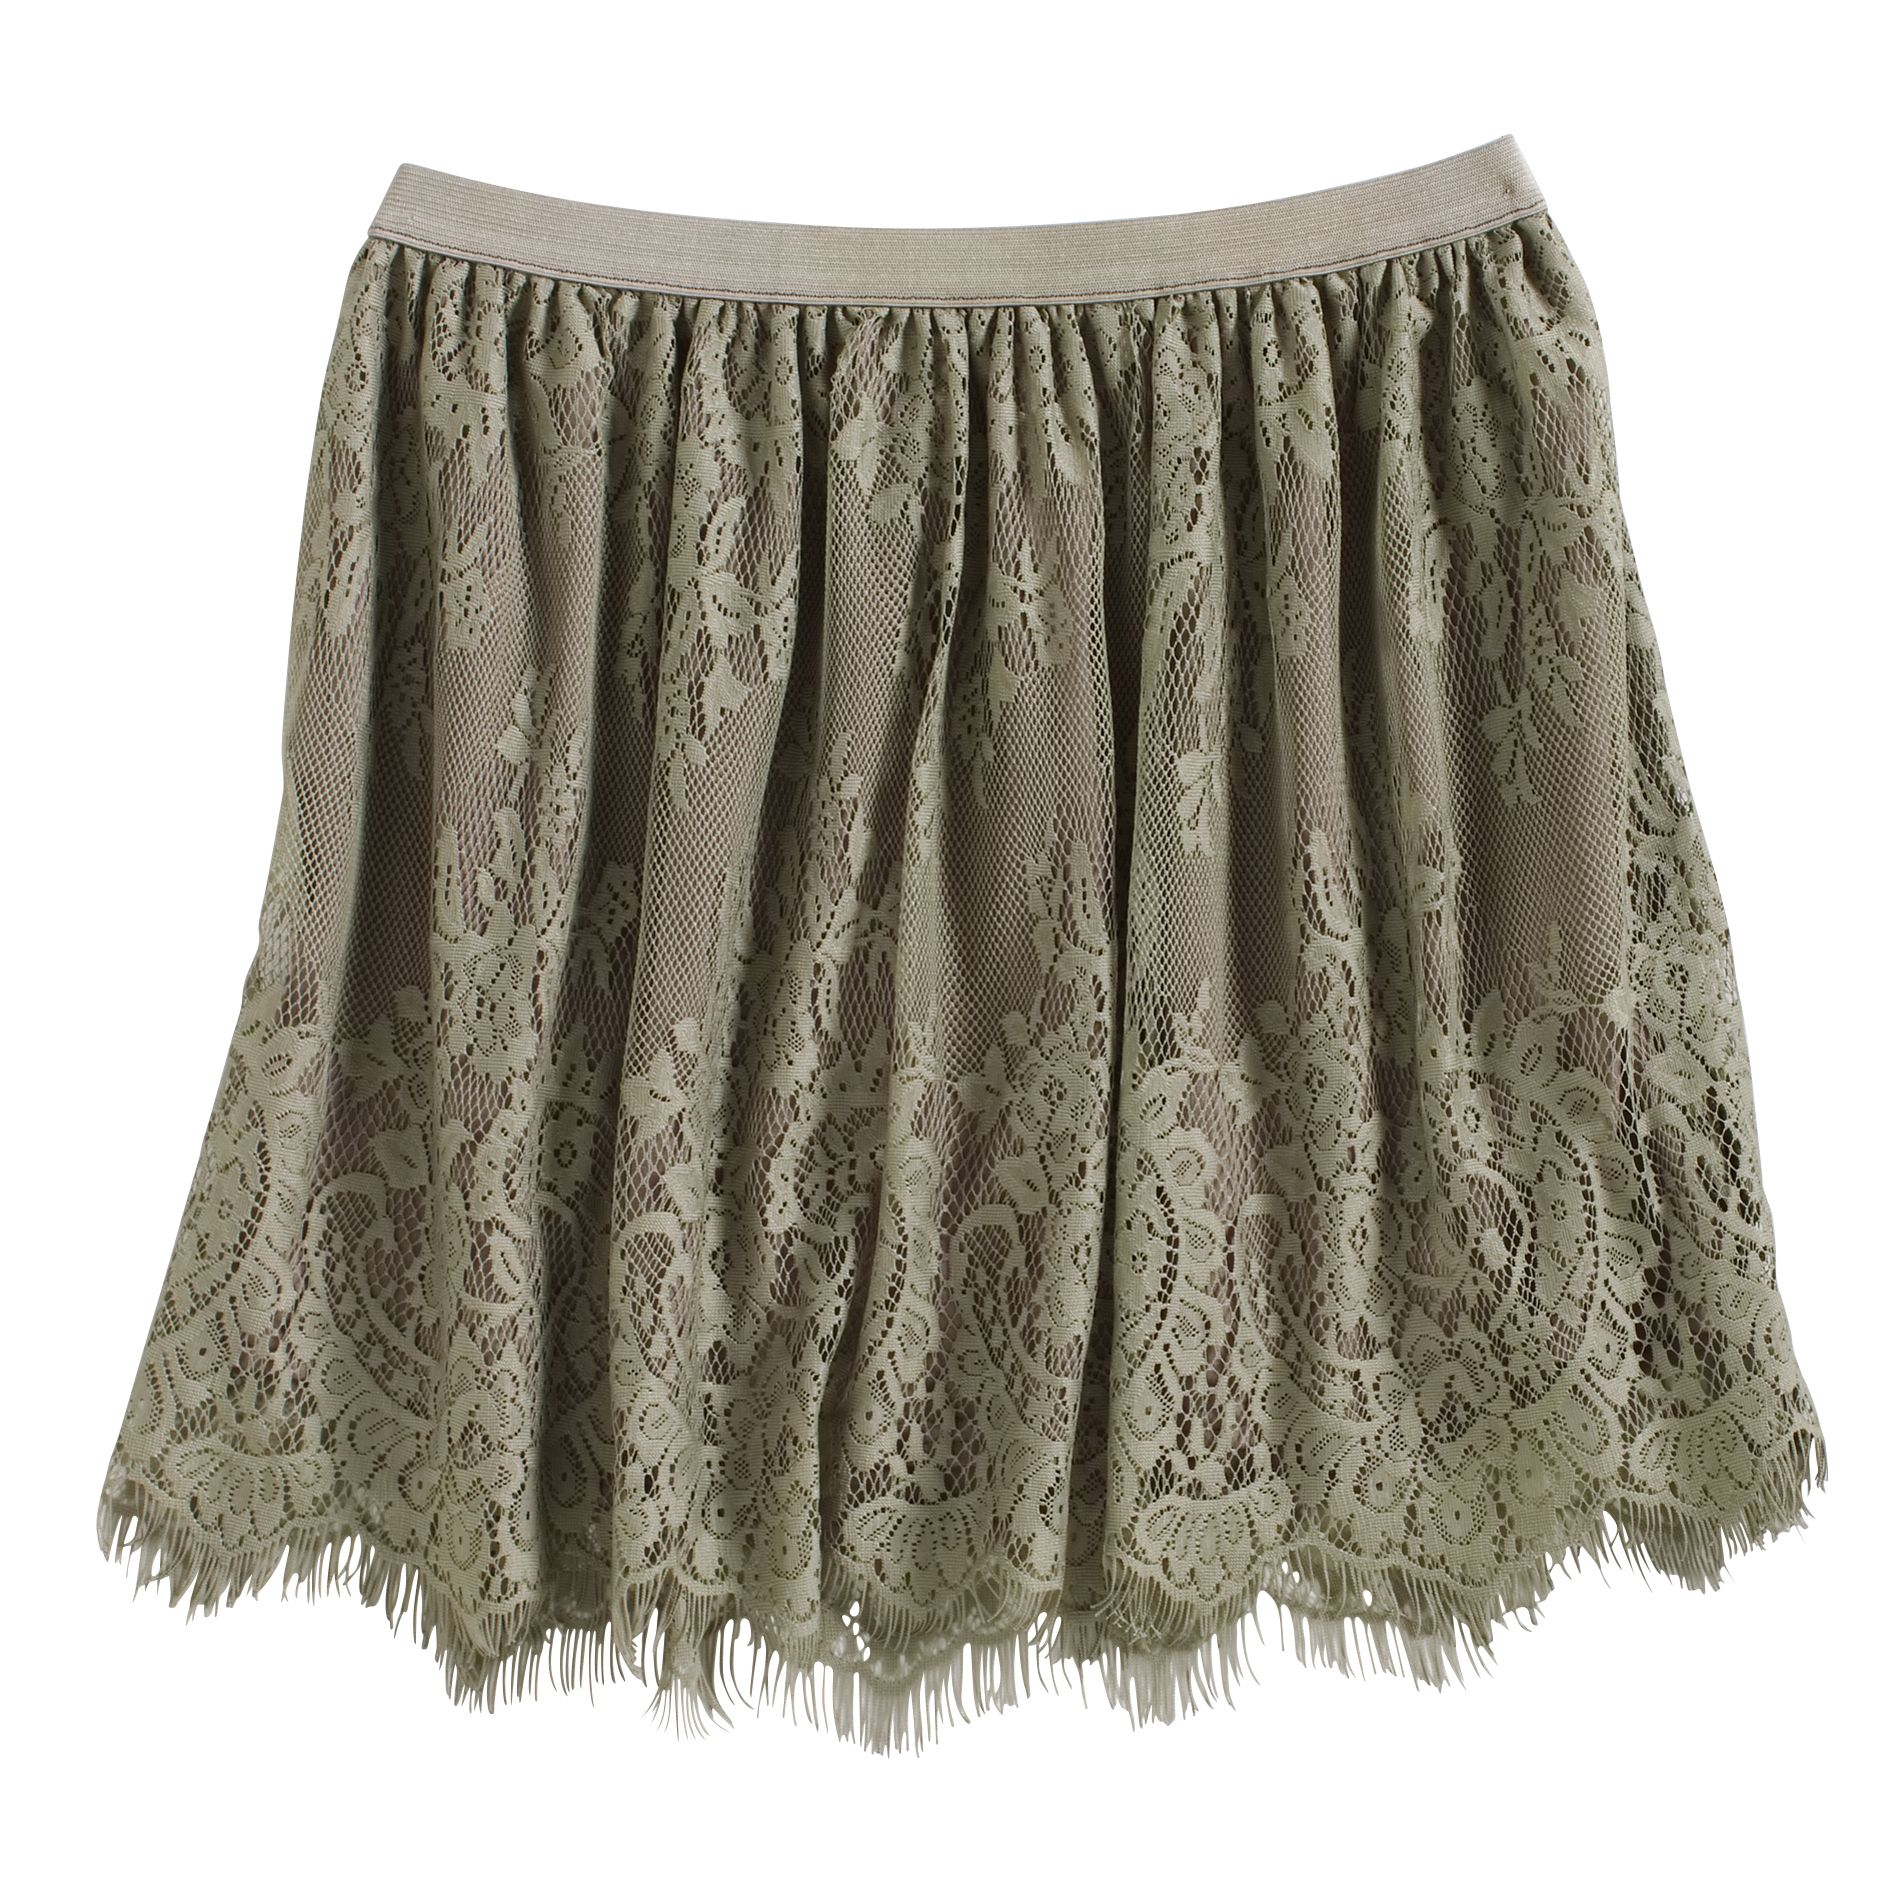 Dream Out Loud by Selena Gomez Junior s Scalloped Lace Skirt